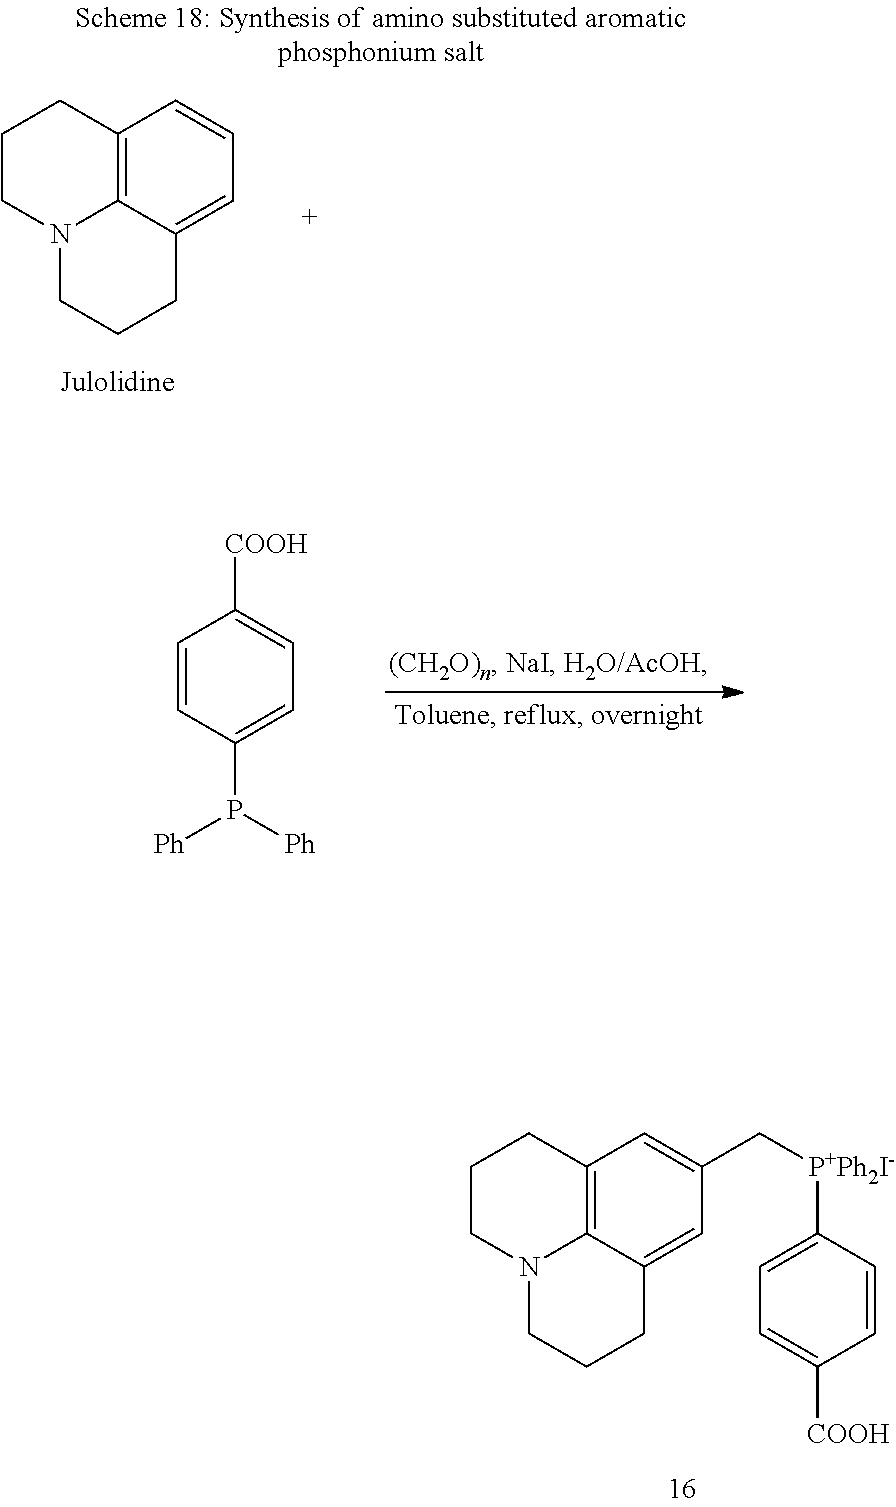 Synthesis of julolidine business paper plan term